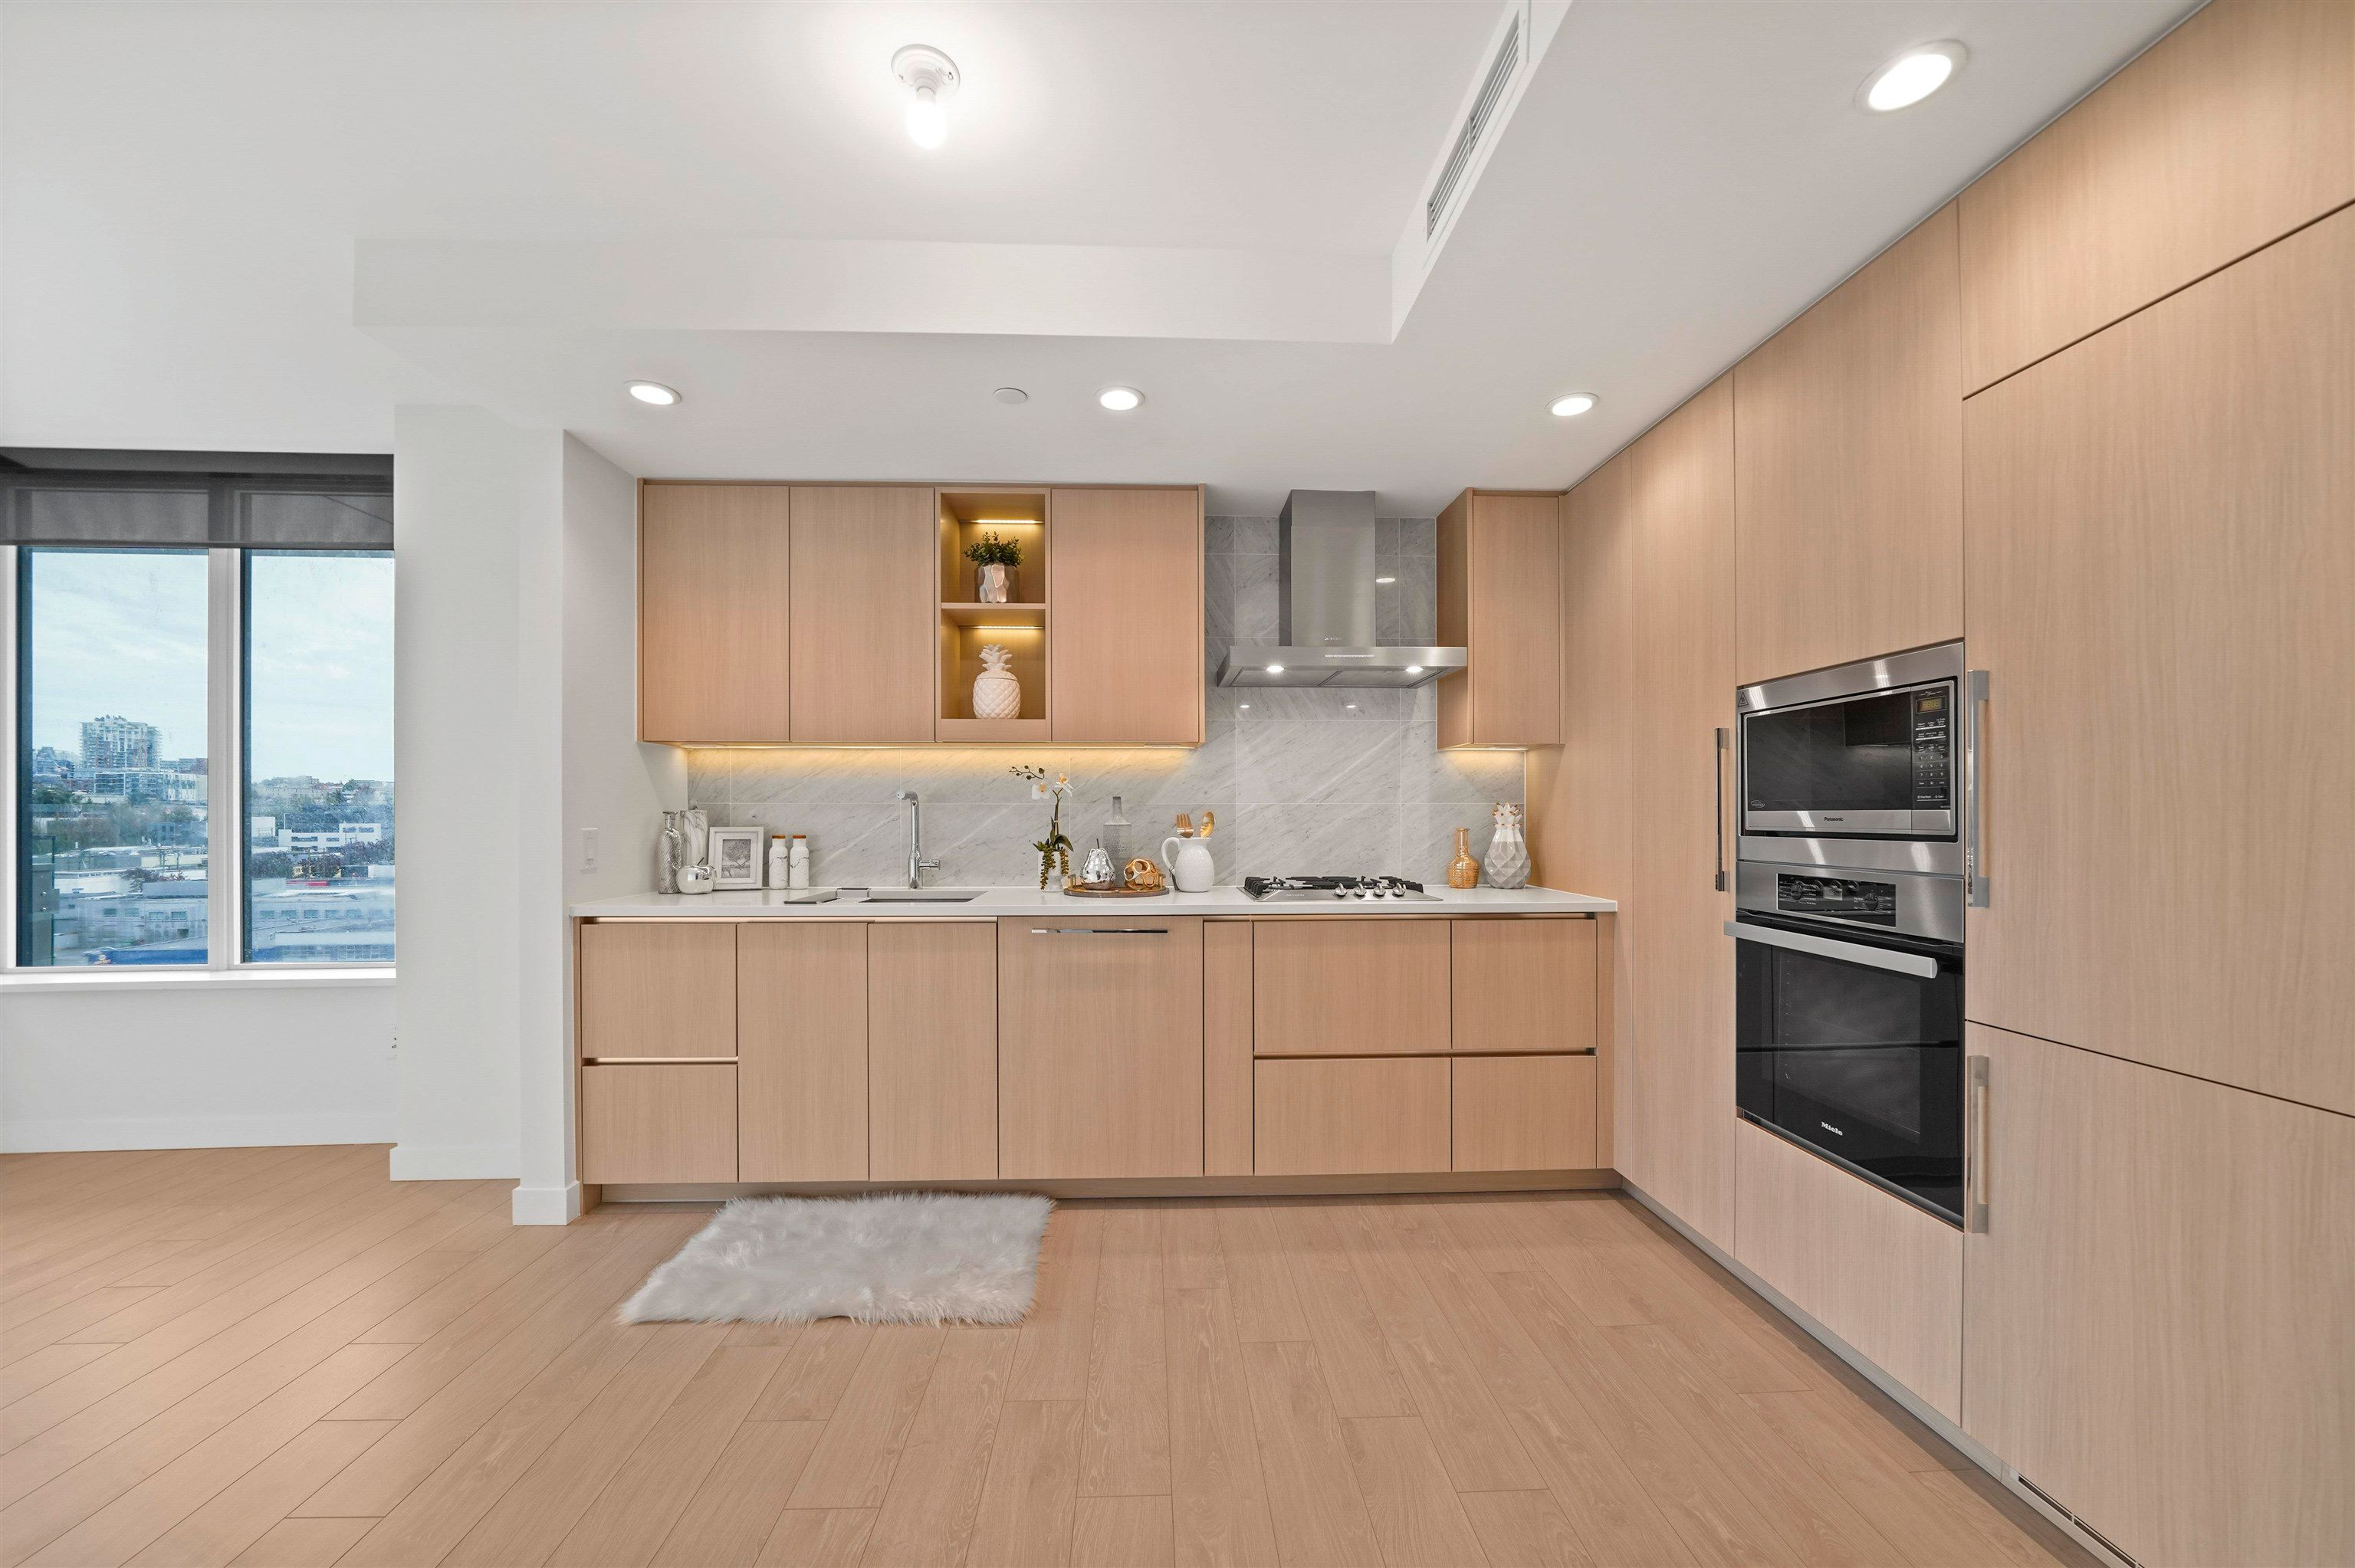 Main Photo: 1014 1768 COOK Street in Vancouver: False Creek Condo for sale (Vancouver West)  : MLS®# R2623942